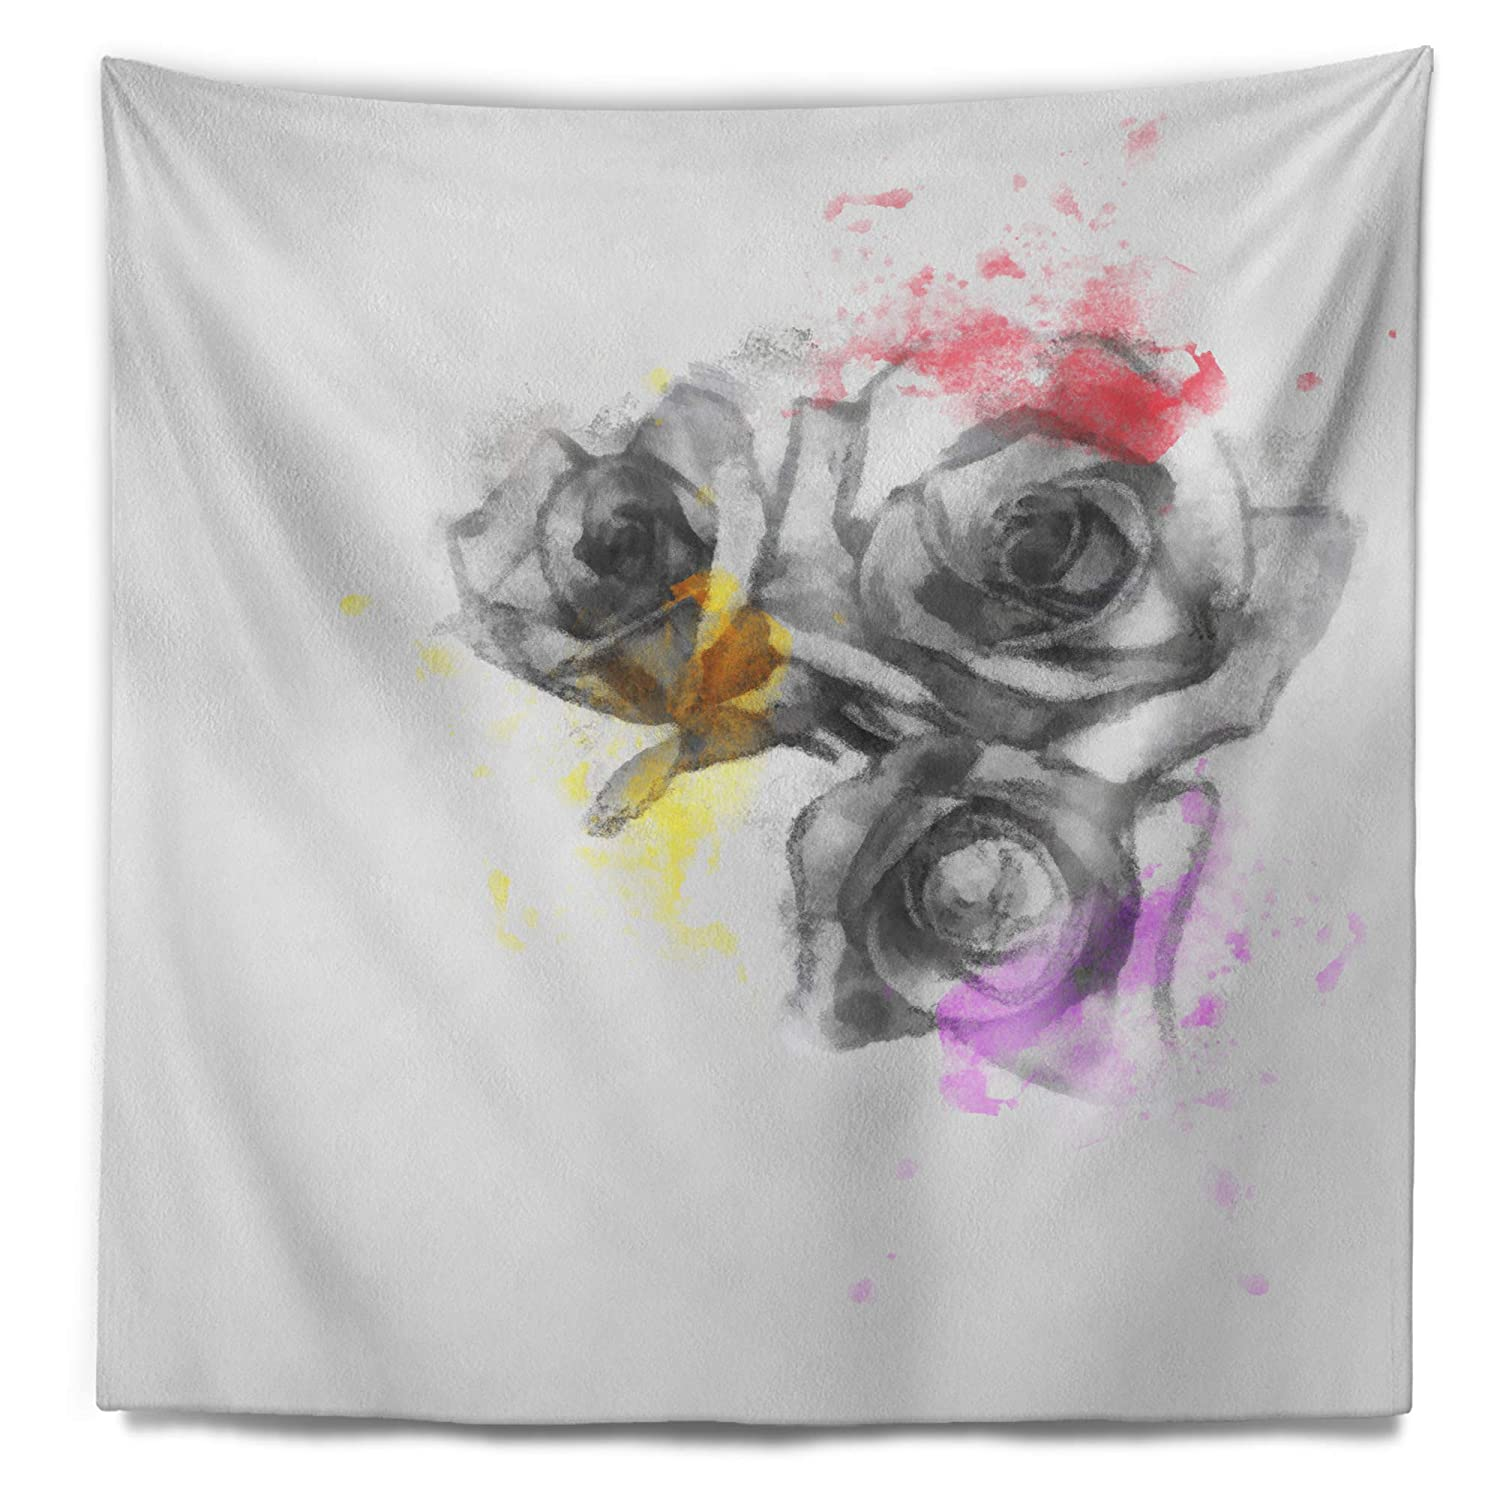 32 in Designart TAP13701-32-39 Black White Watercolor Rose Sketch Floral Blanket D/écor Art for Home and Office Wall Tapestry x 39 in Medium